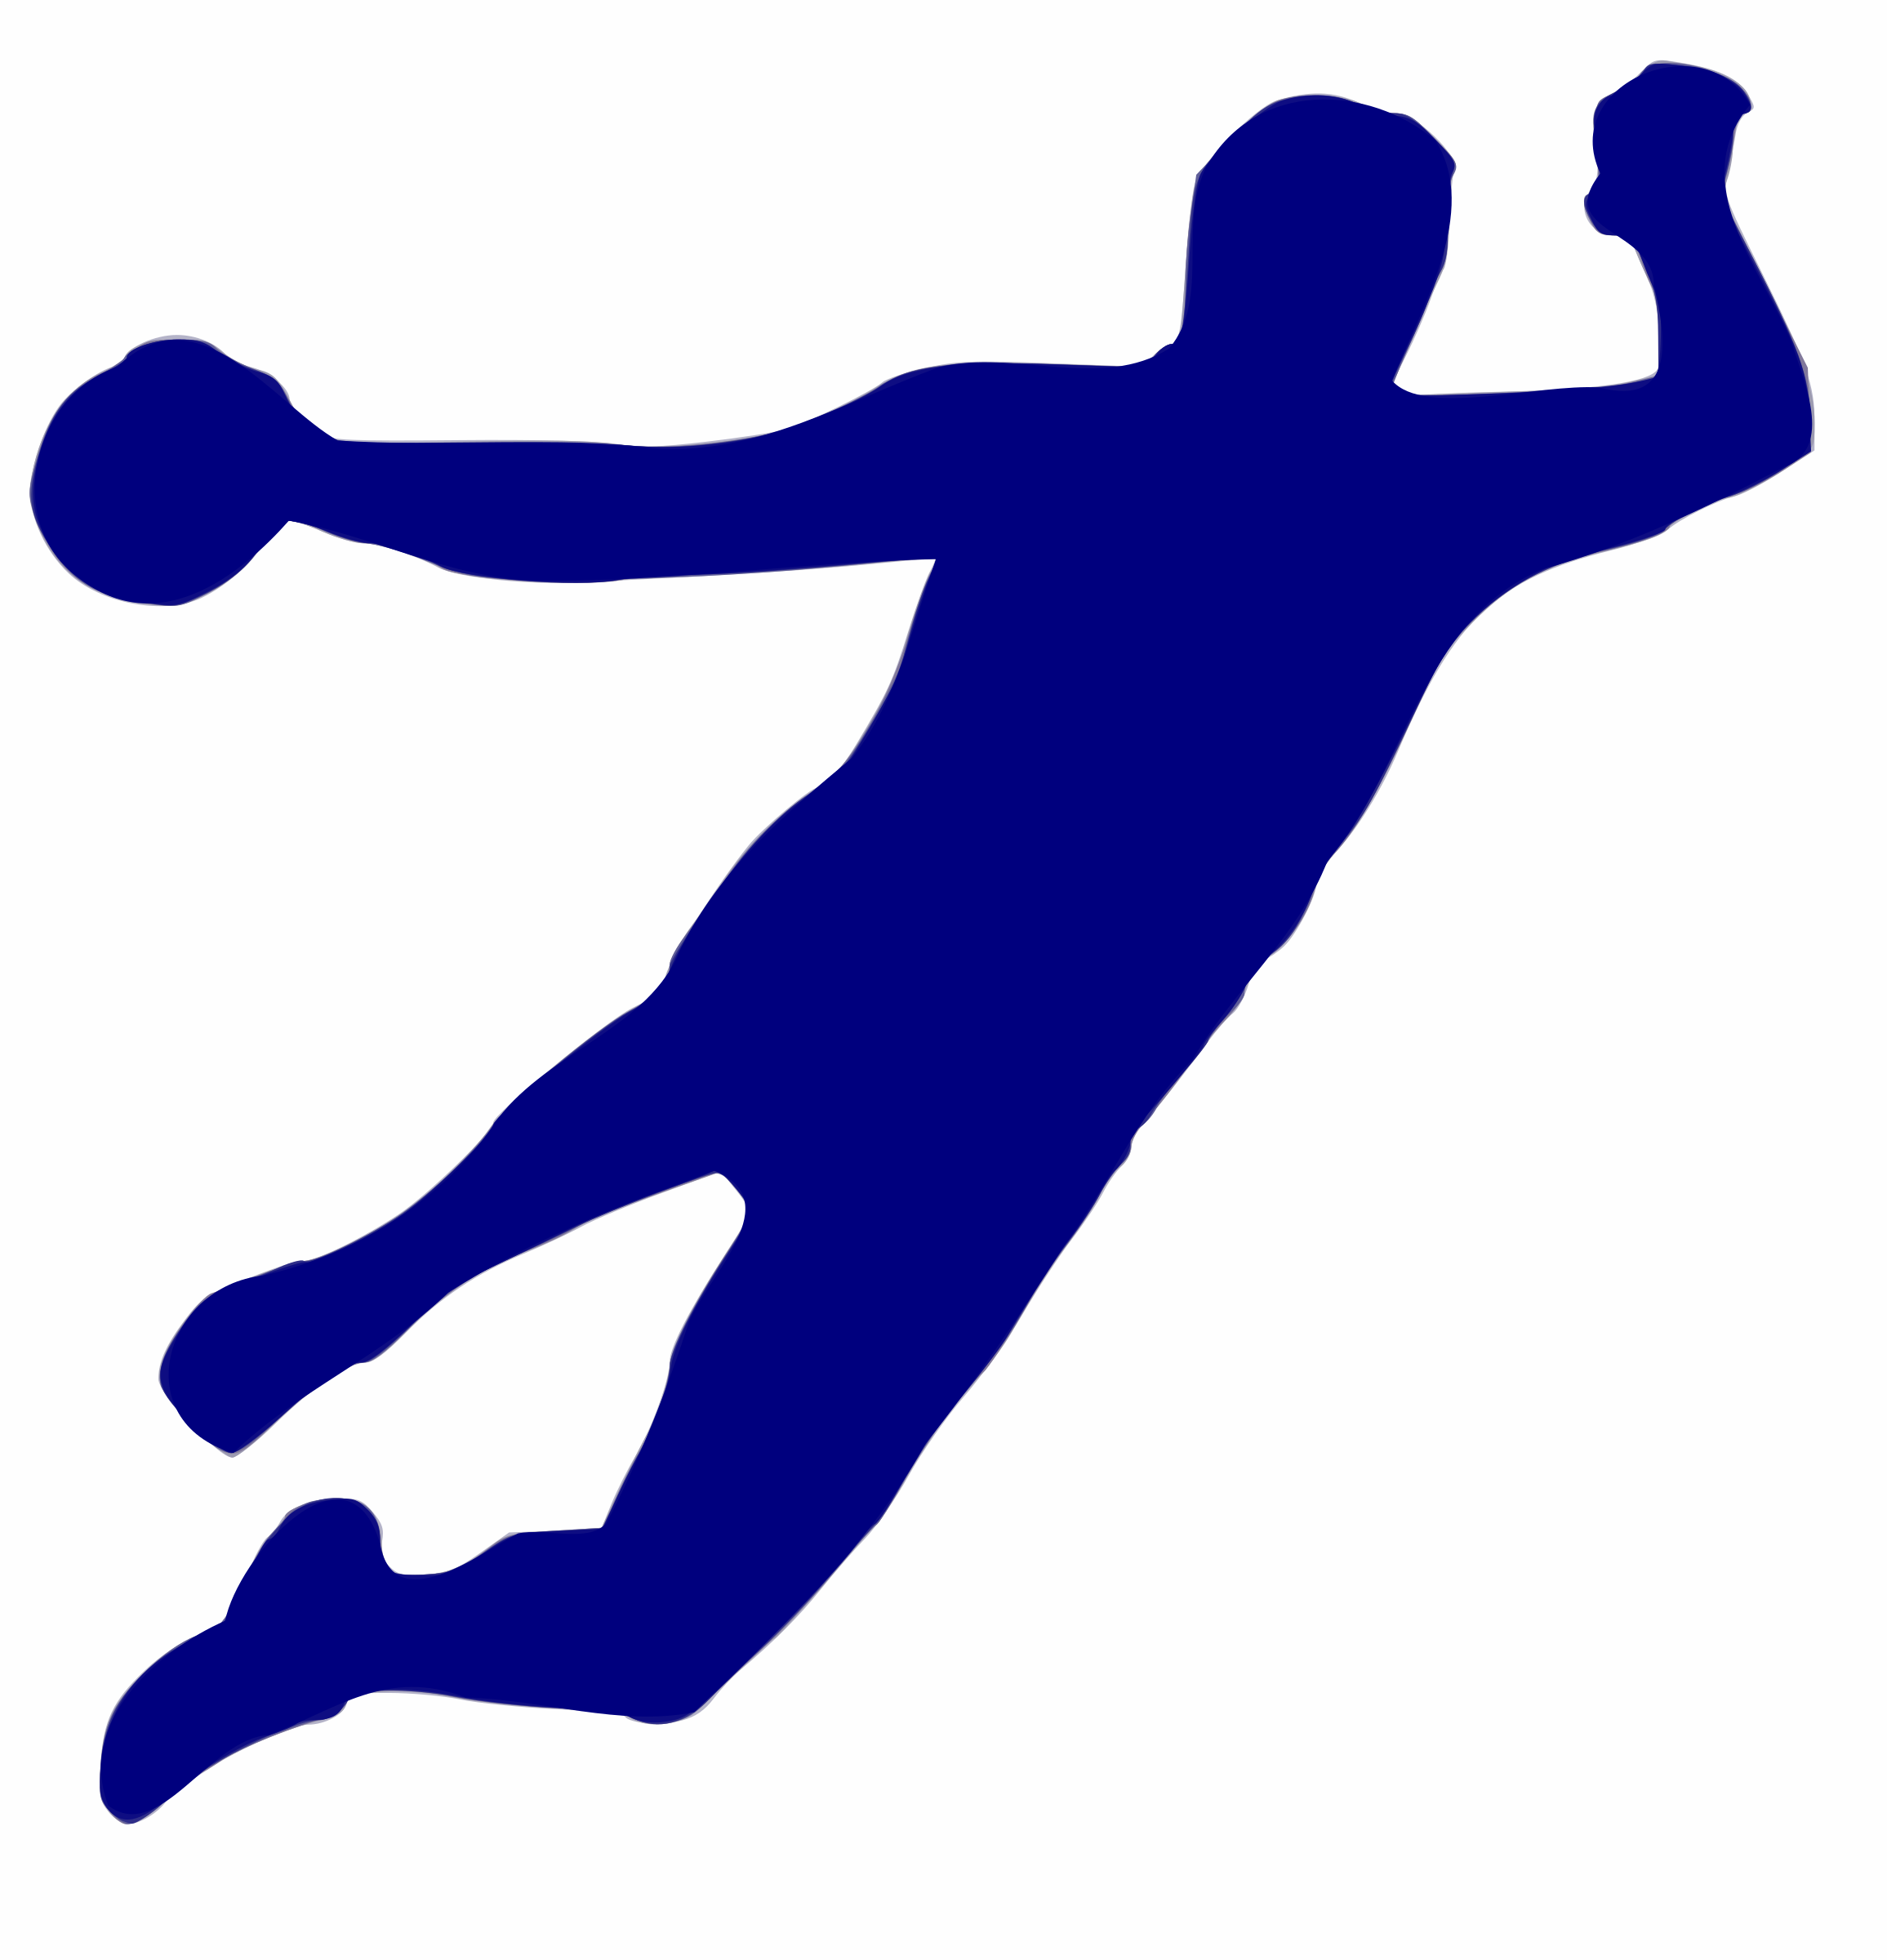 Collection of Handball clipart | Free download best ...